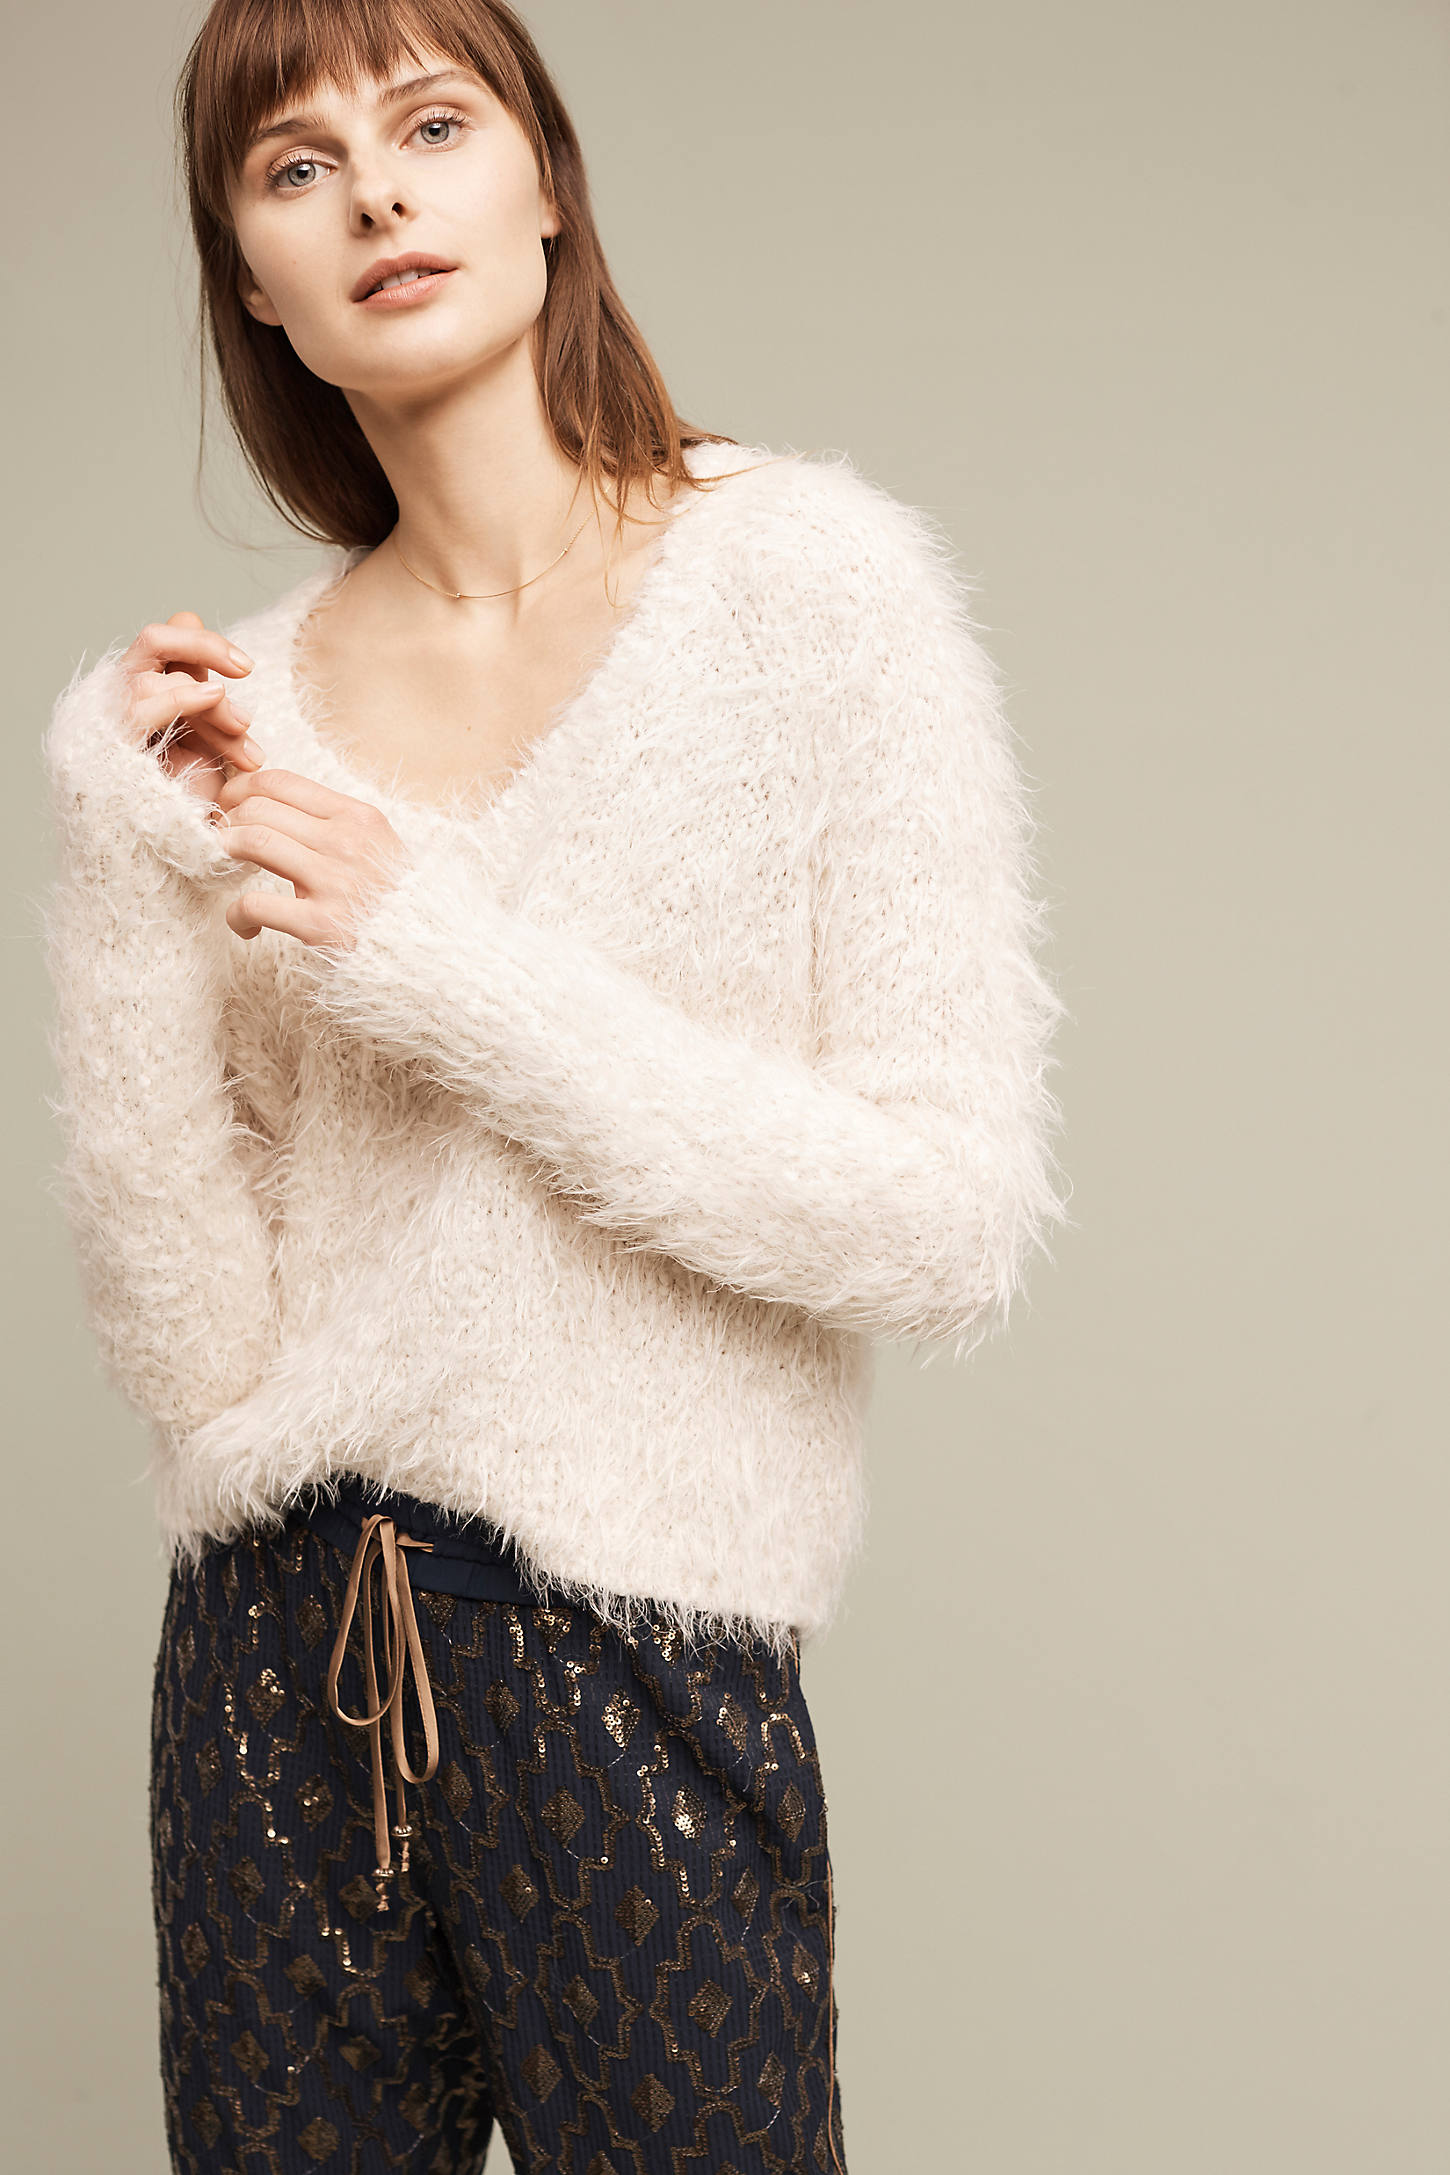 Snowfrost Boucle Pullover